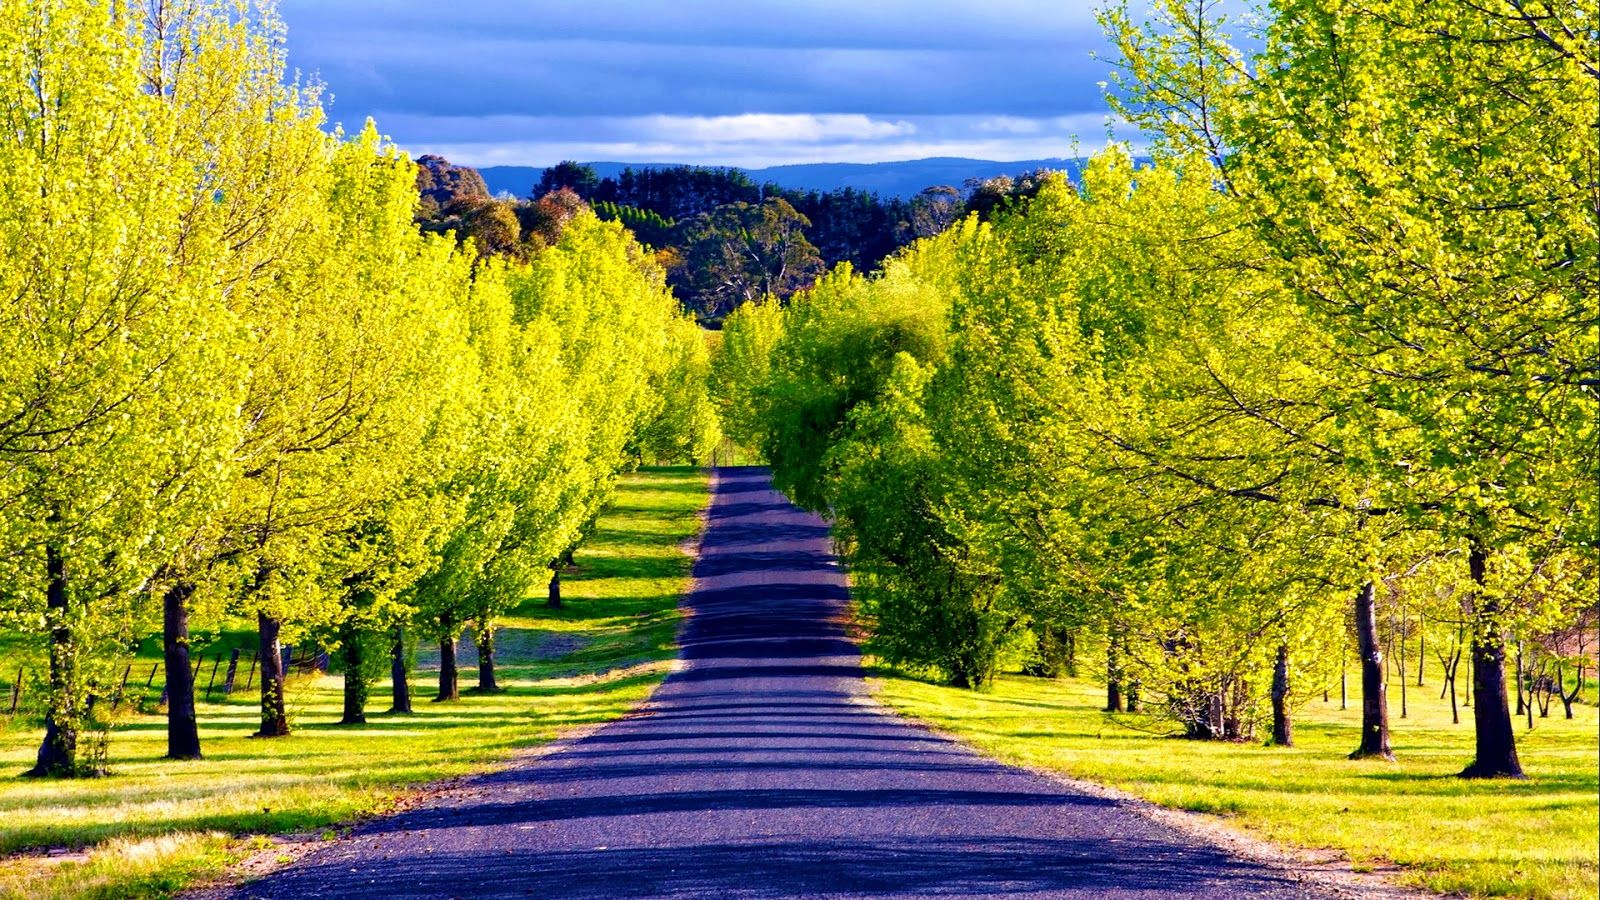 most beautiful scenic wallpapers | pathway wallpapers - the most